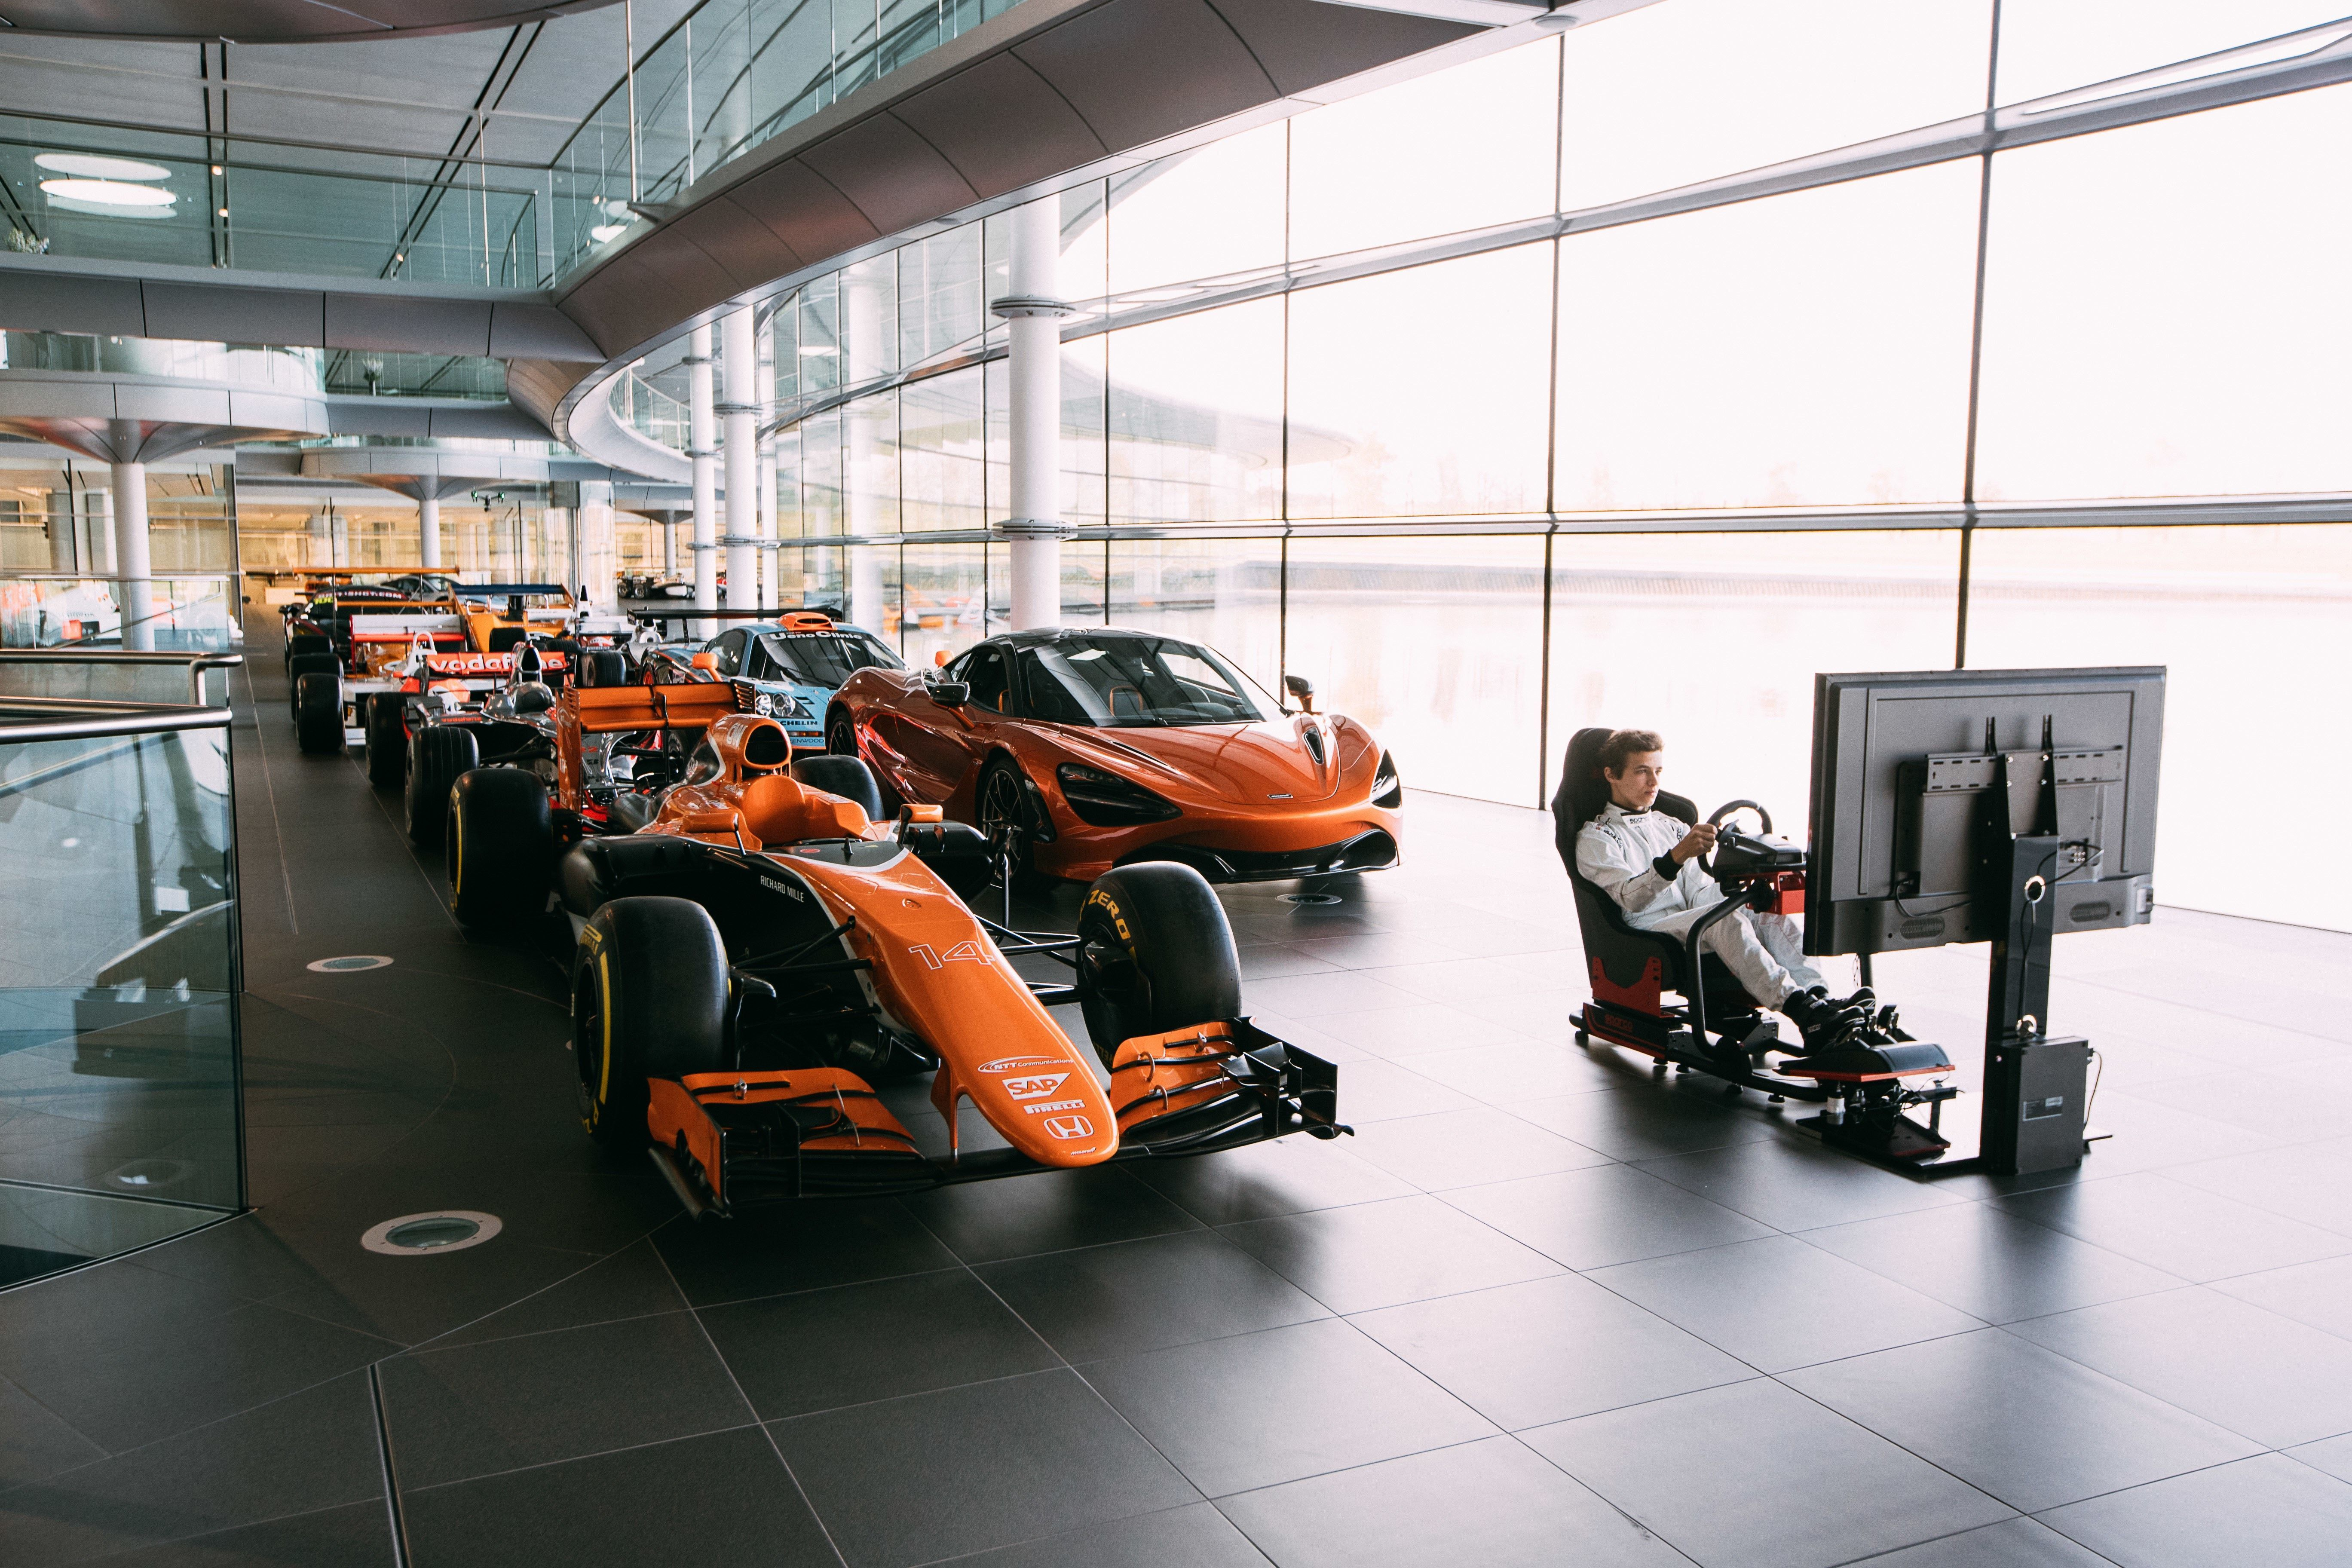 McLaren to offer F1 simulator role to eSports prize winner